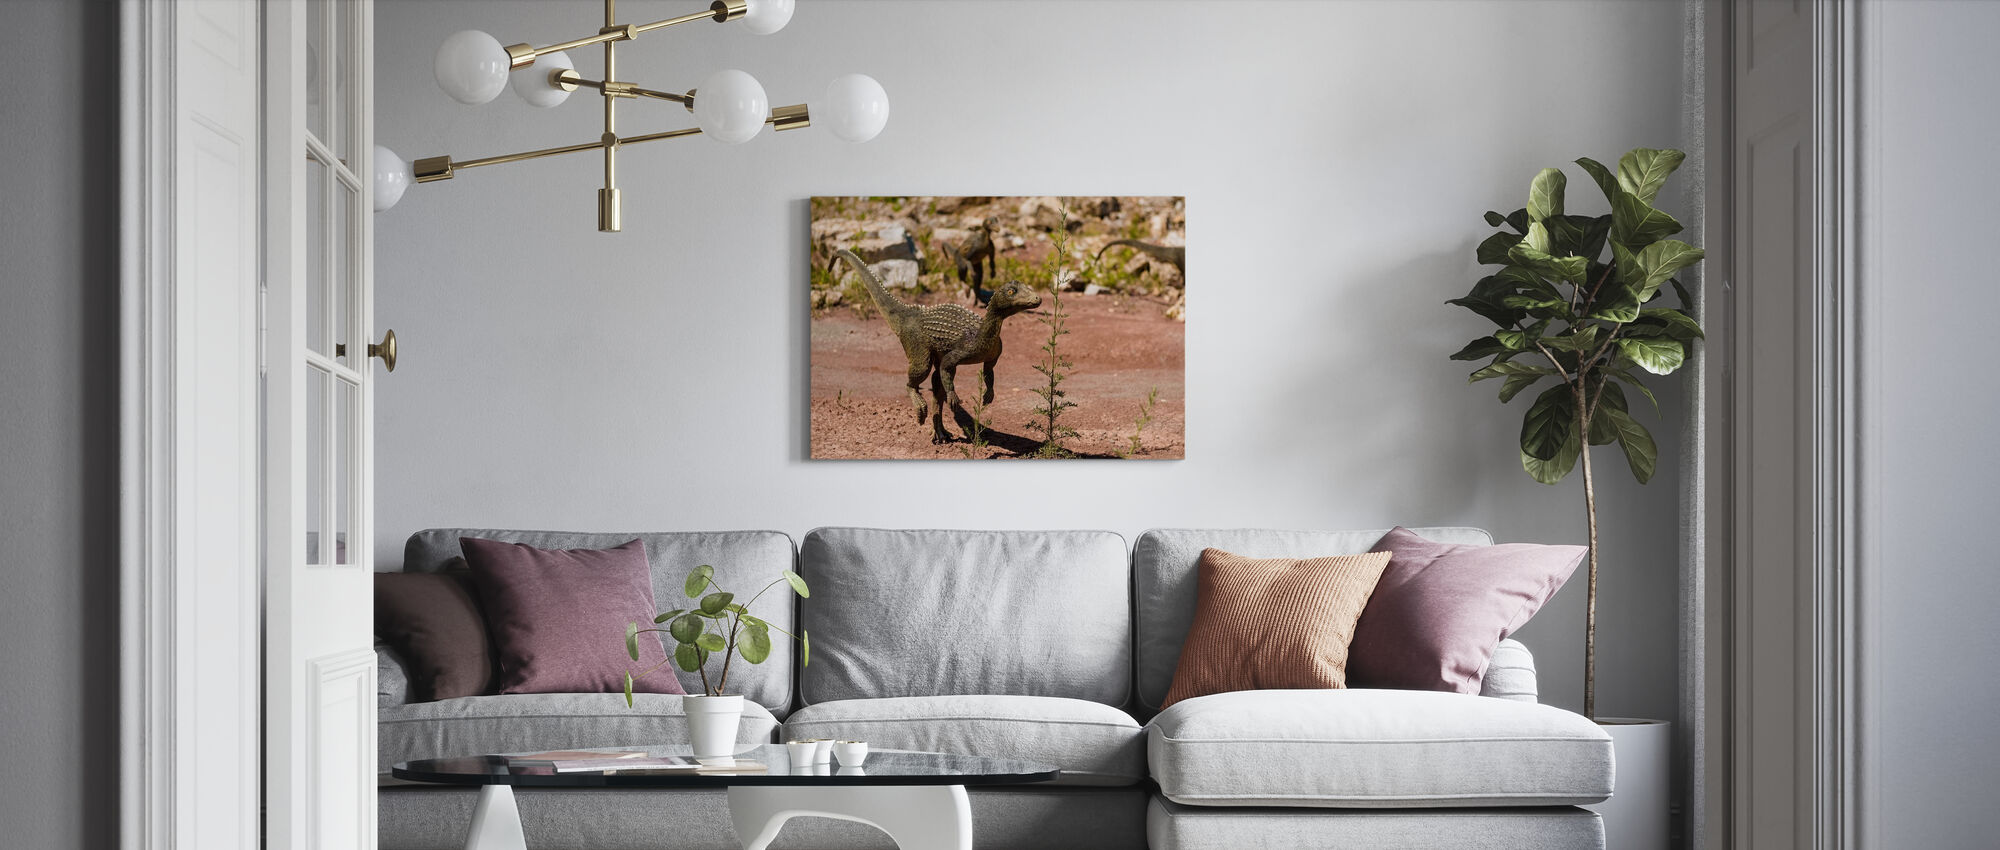 Baby Dinosaurs - Canvas print - Living Room